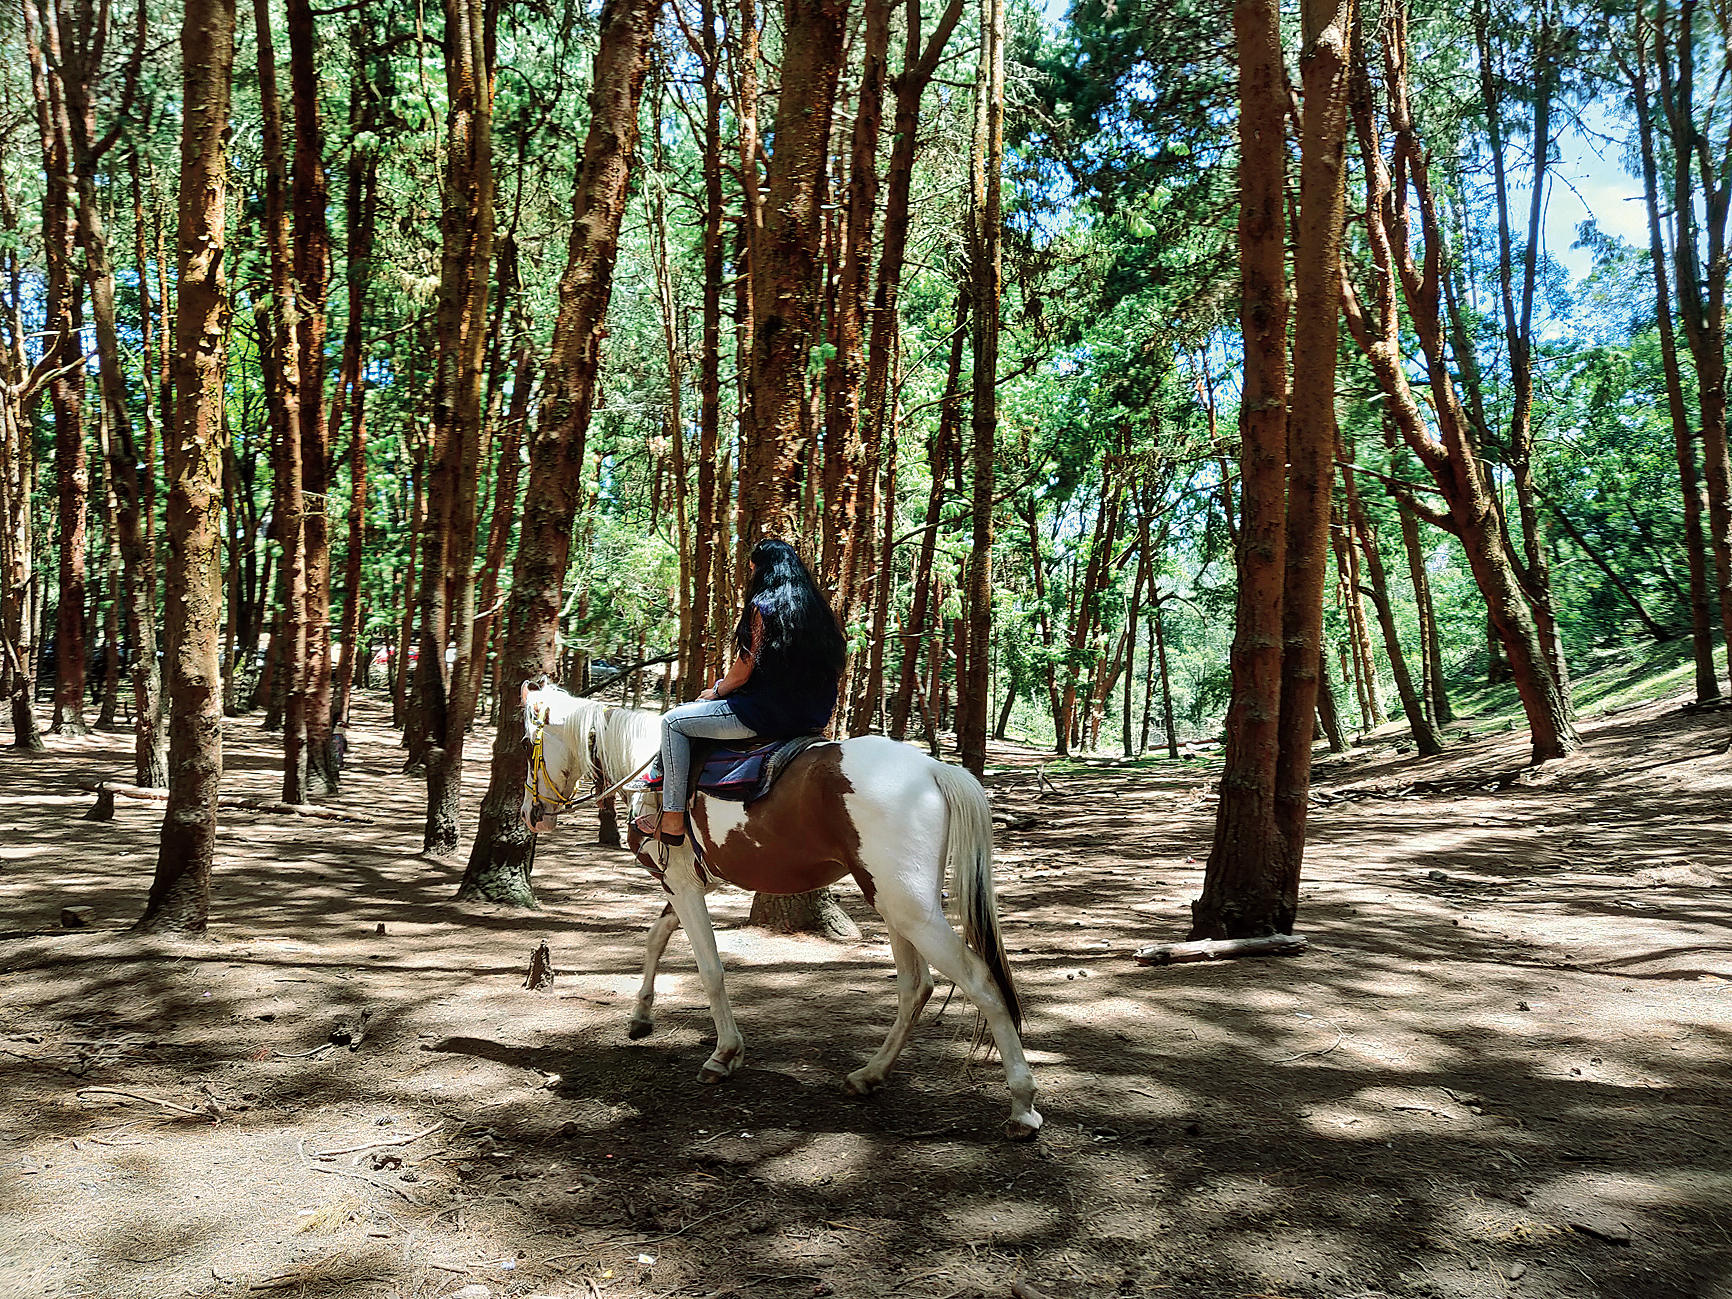 The pine forest near the solar observatory is a popular tourist destination. The plantations were started by H.D. Bryant in 1906 to grow timber. Today the place offers opportunities for horse-riding, photo shoots and other activities